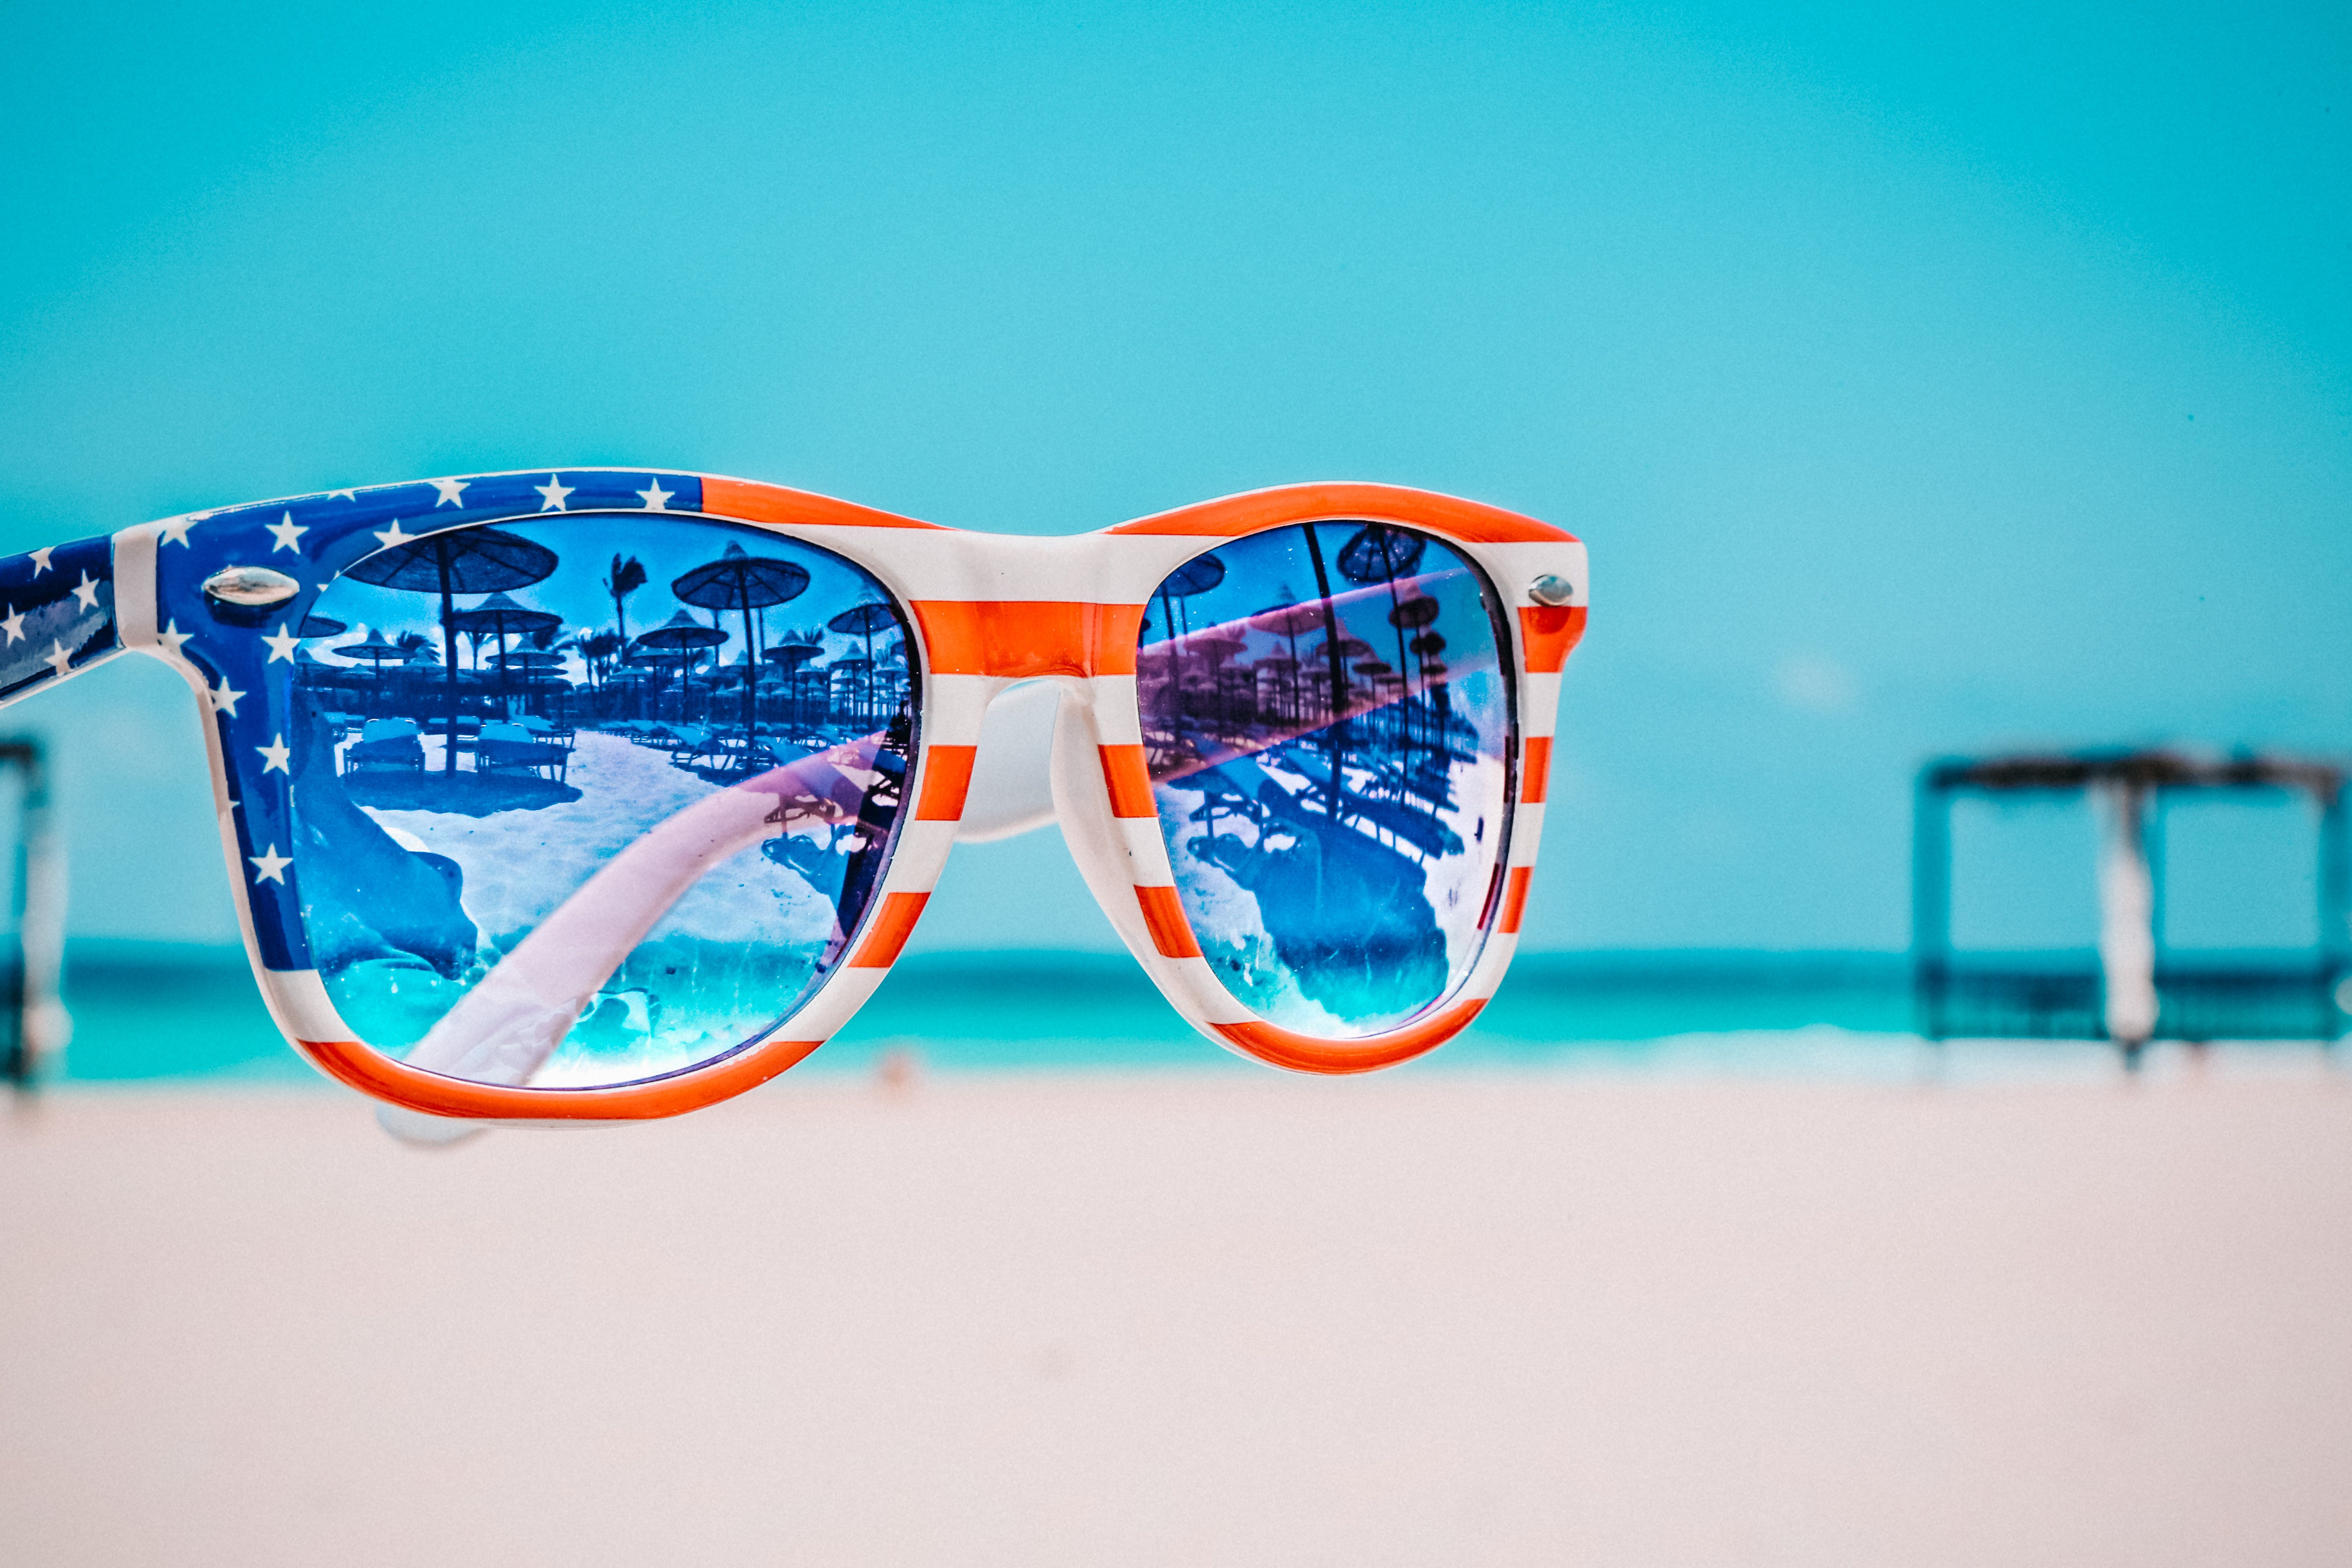 Focus Photography of American Flag-accent Wayfarer-styled Sunglasses With Sea Background